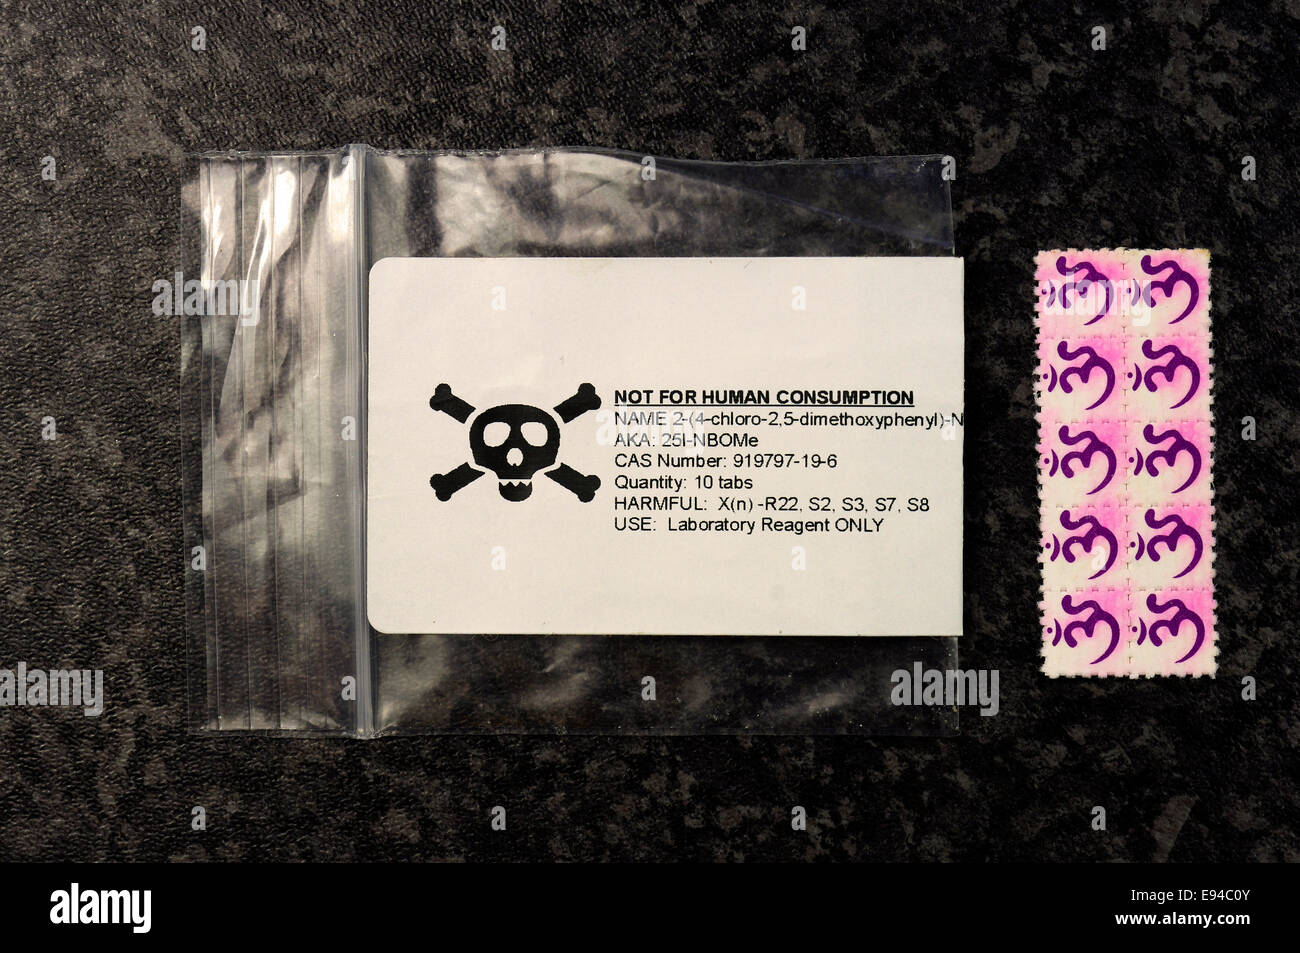 25I-NBOMe BLOTTERS 1200 mcg with the Sonic design (100 000 blotters pack)